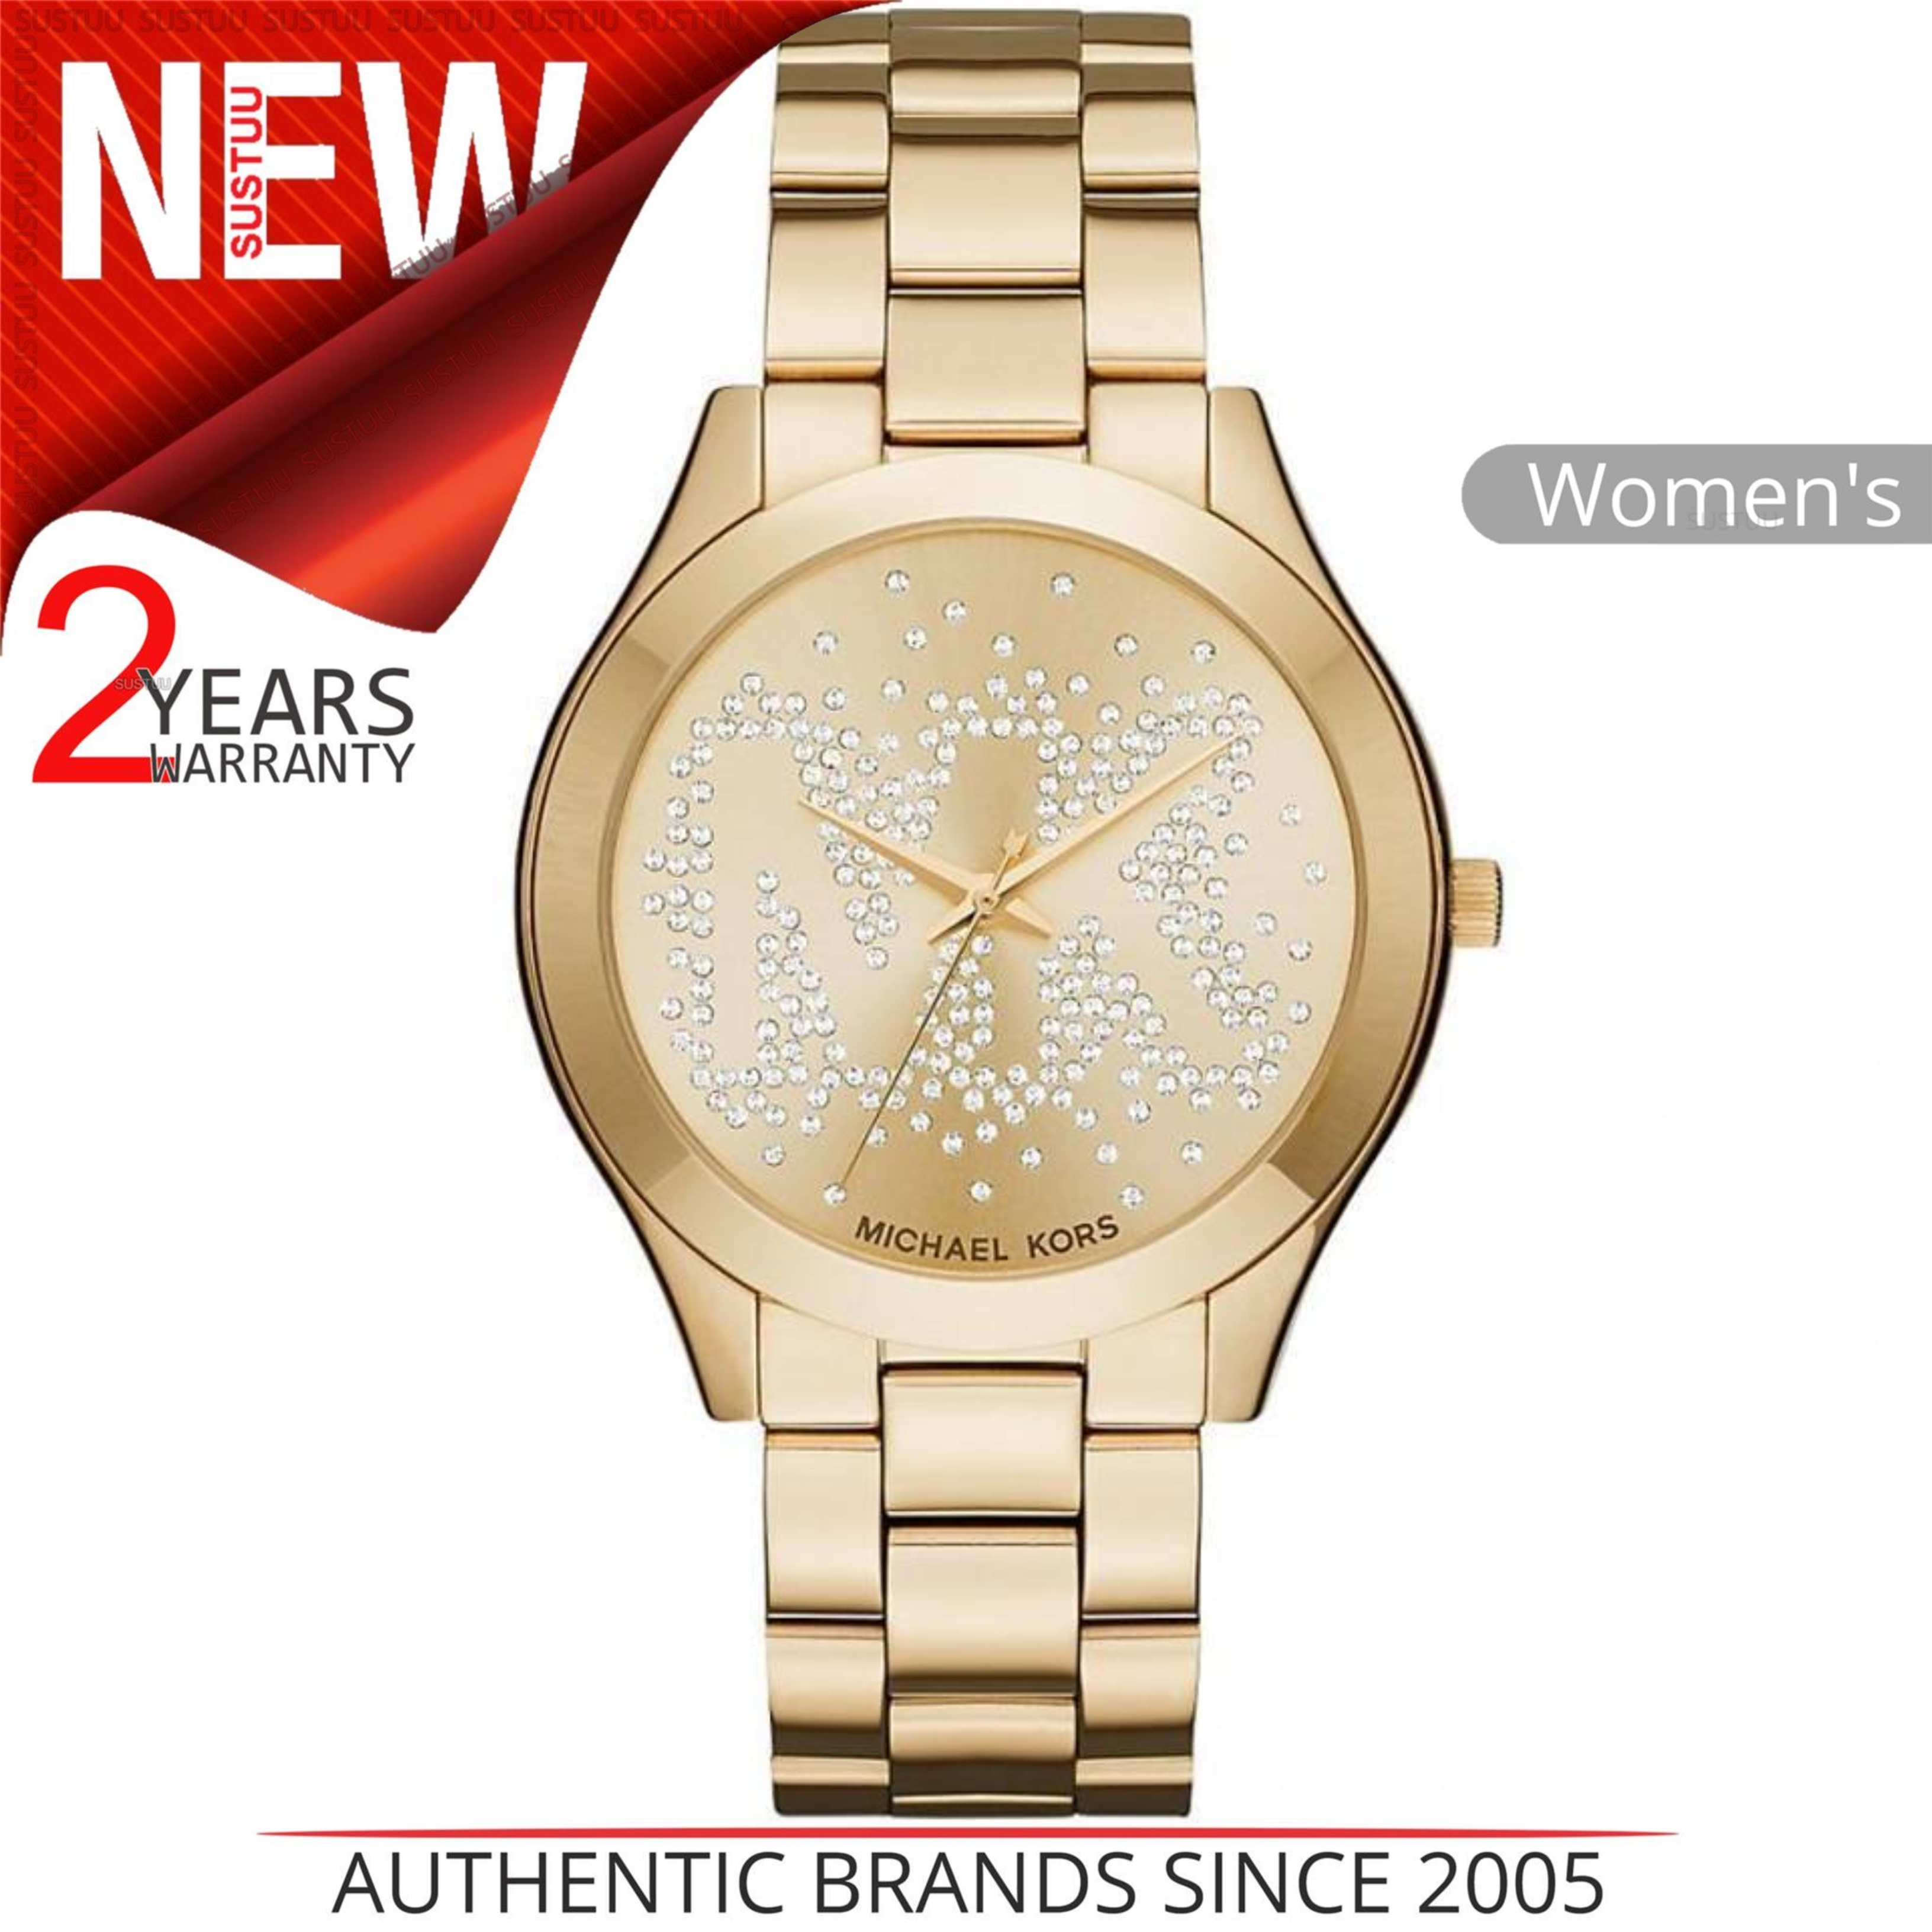 113be858330 Details about Michael Kors Slim Runway Women Watch MK3590│Gold Tone  Bracelet│Crystal Pave Dial